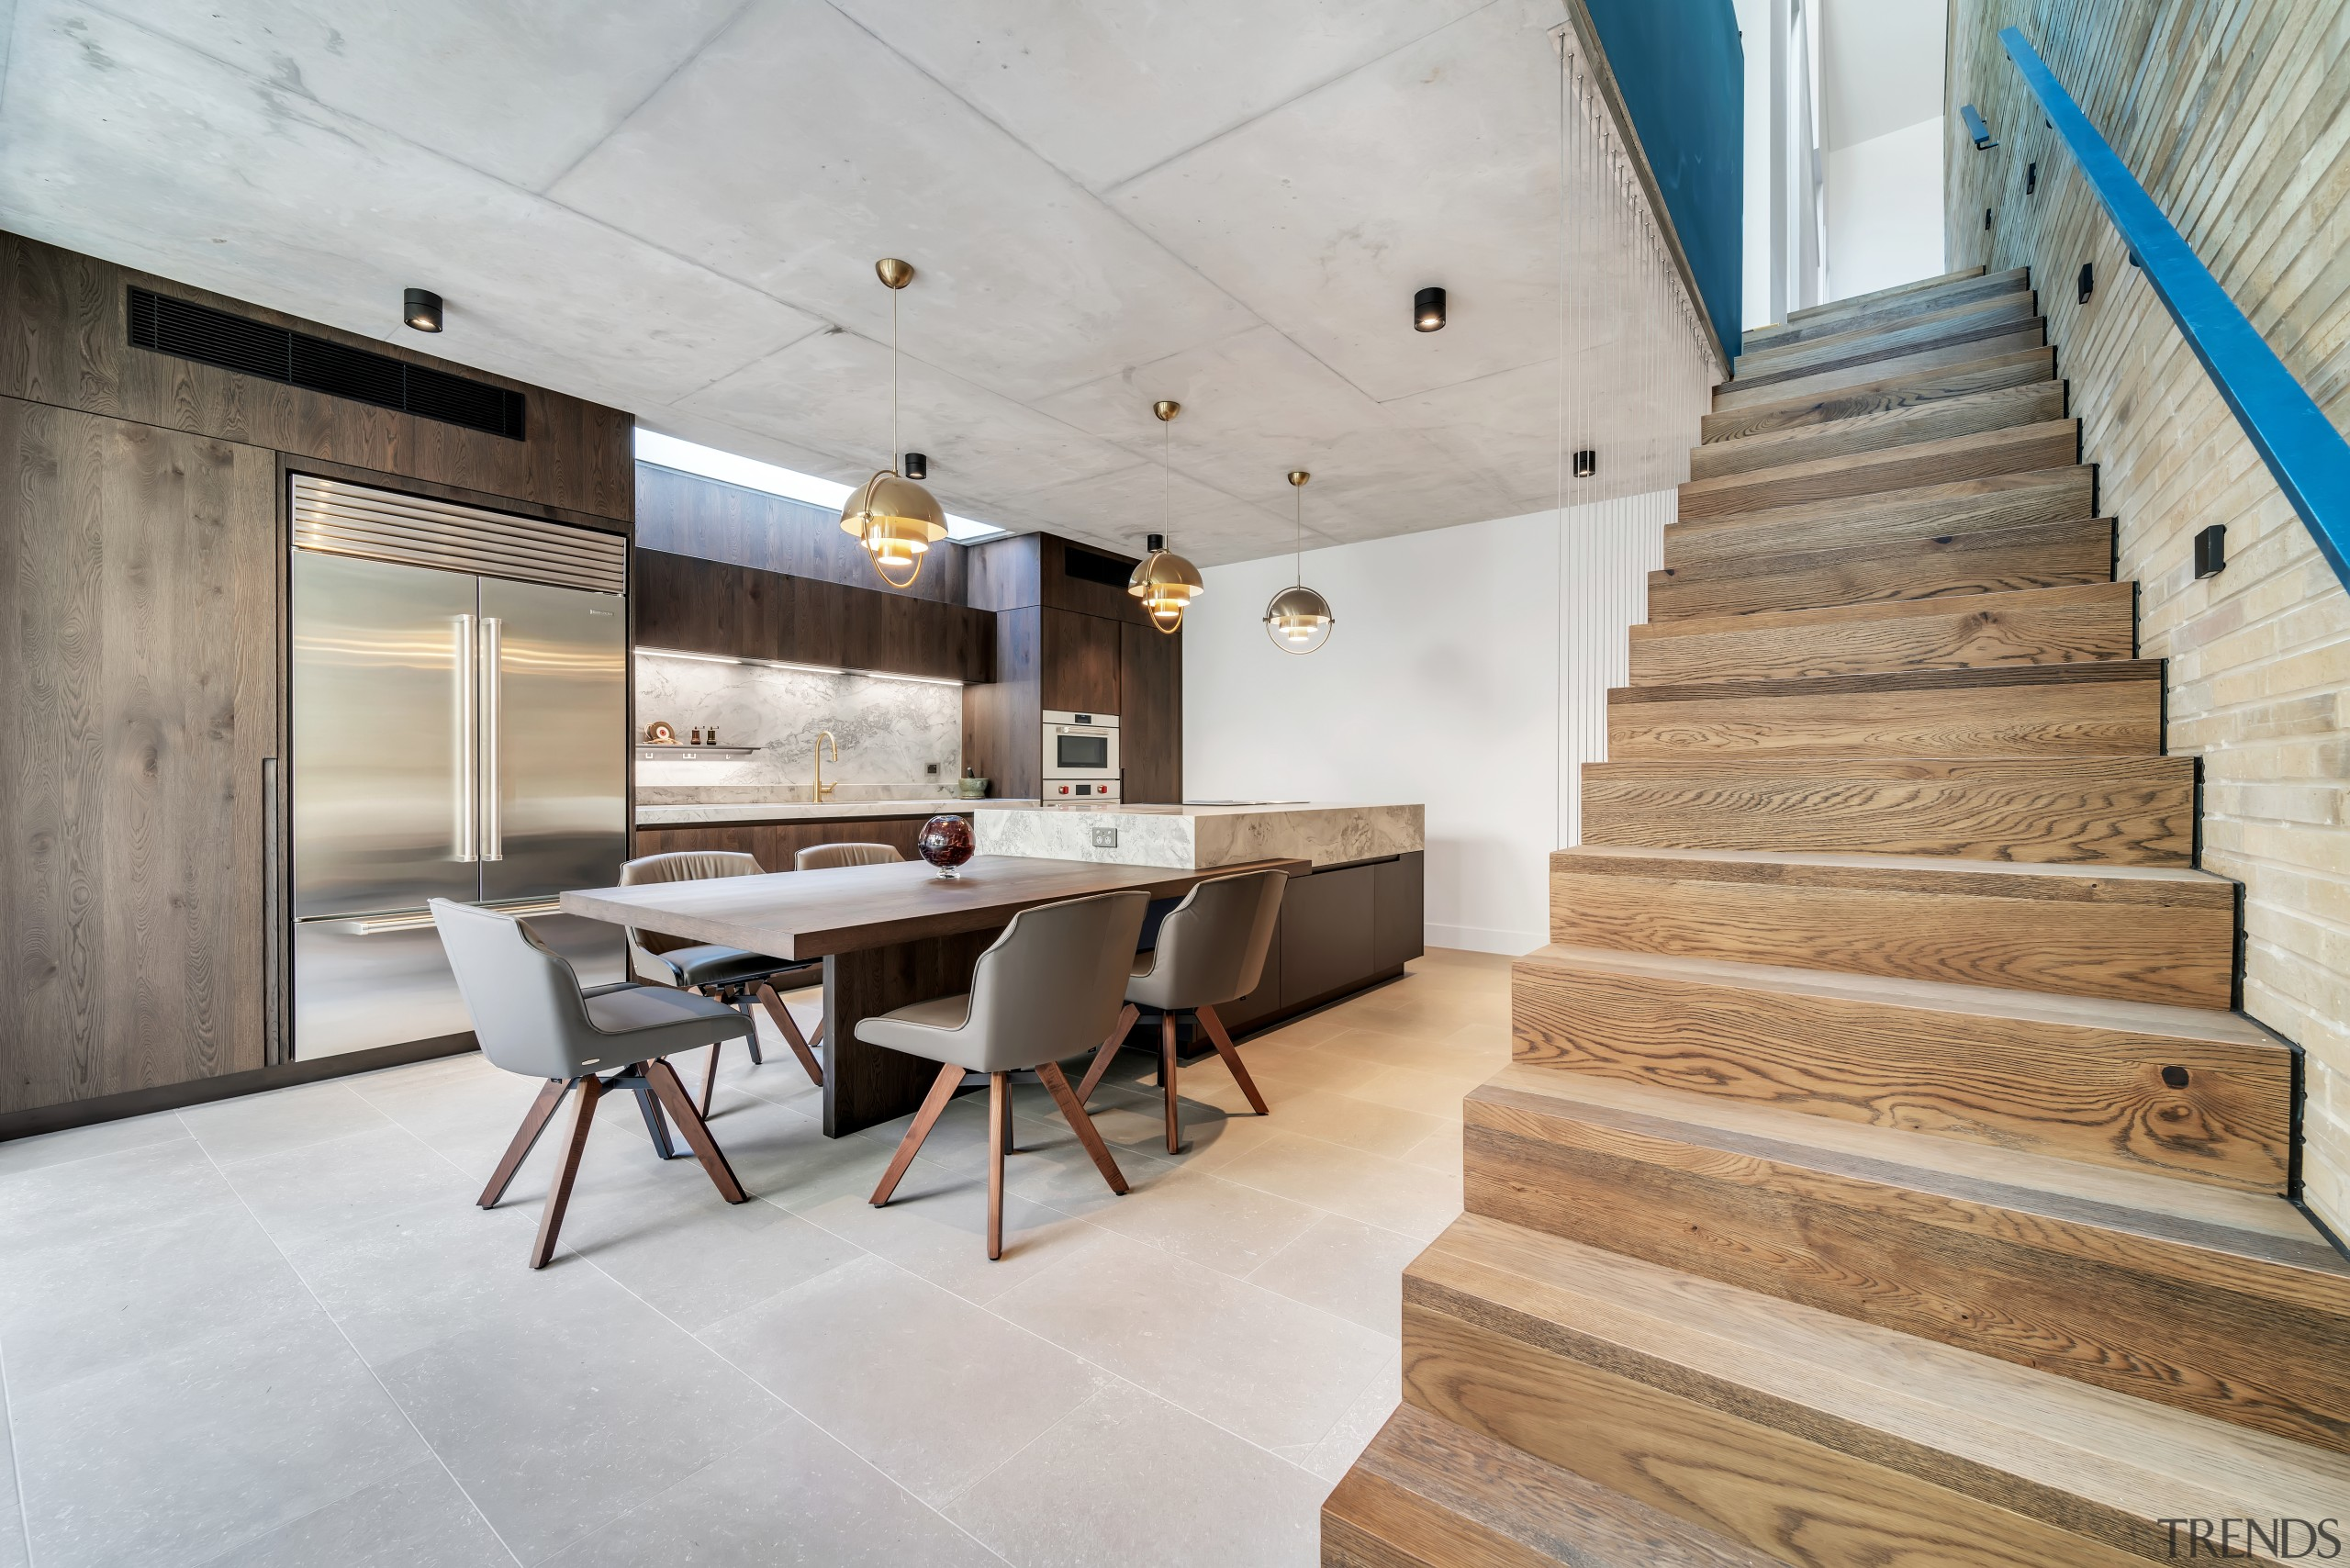 Wood stairs provide a natural complement to this